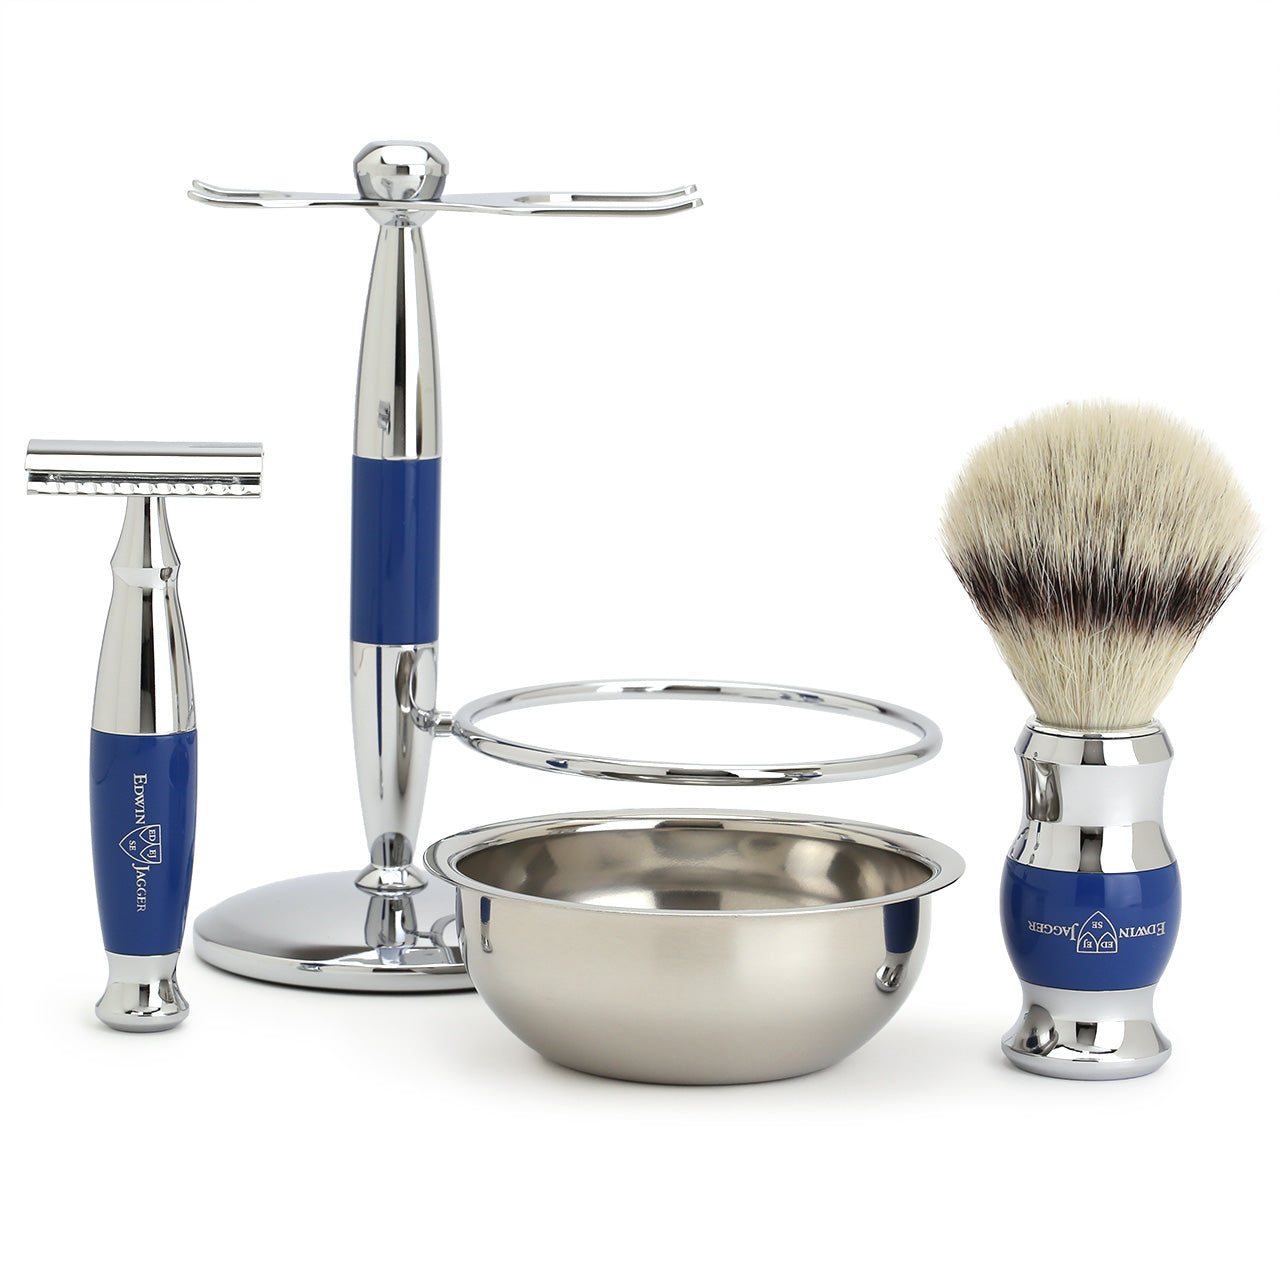 Edwin Jagger Shaving Set with Shaving Brush, Safety Razor, Stand and Bowl - Blue